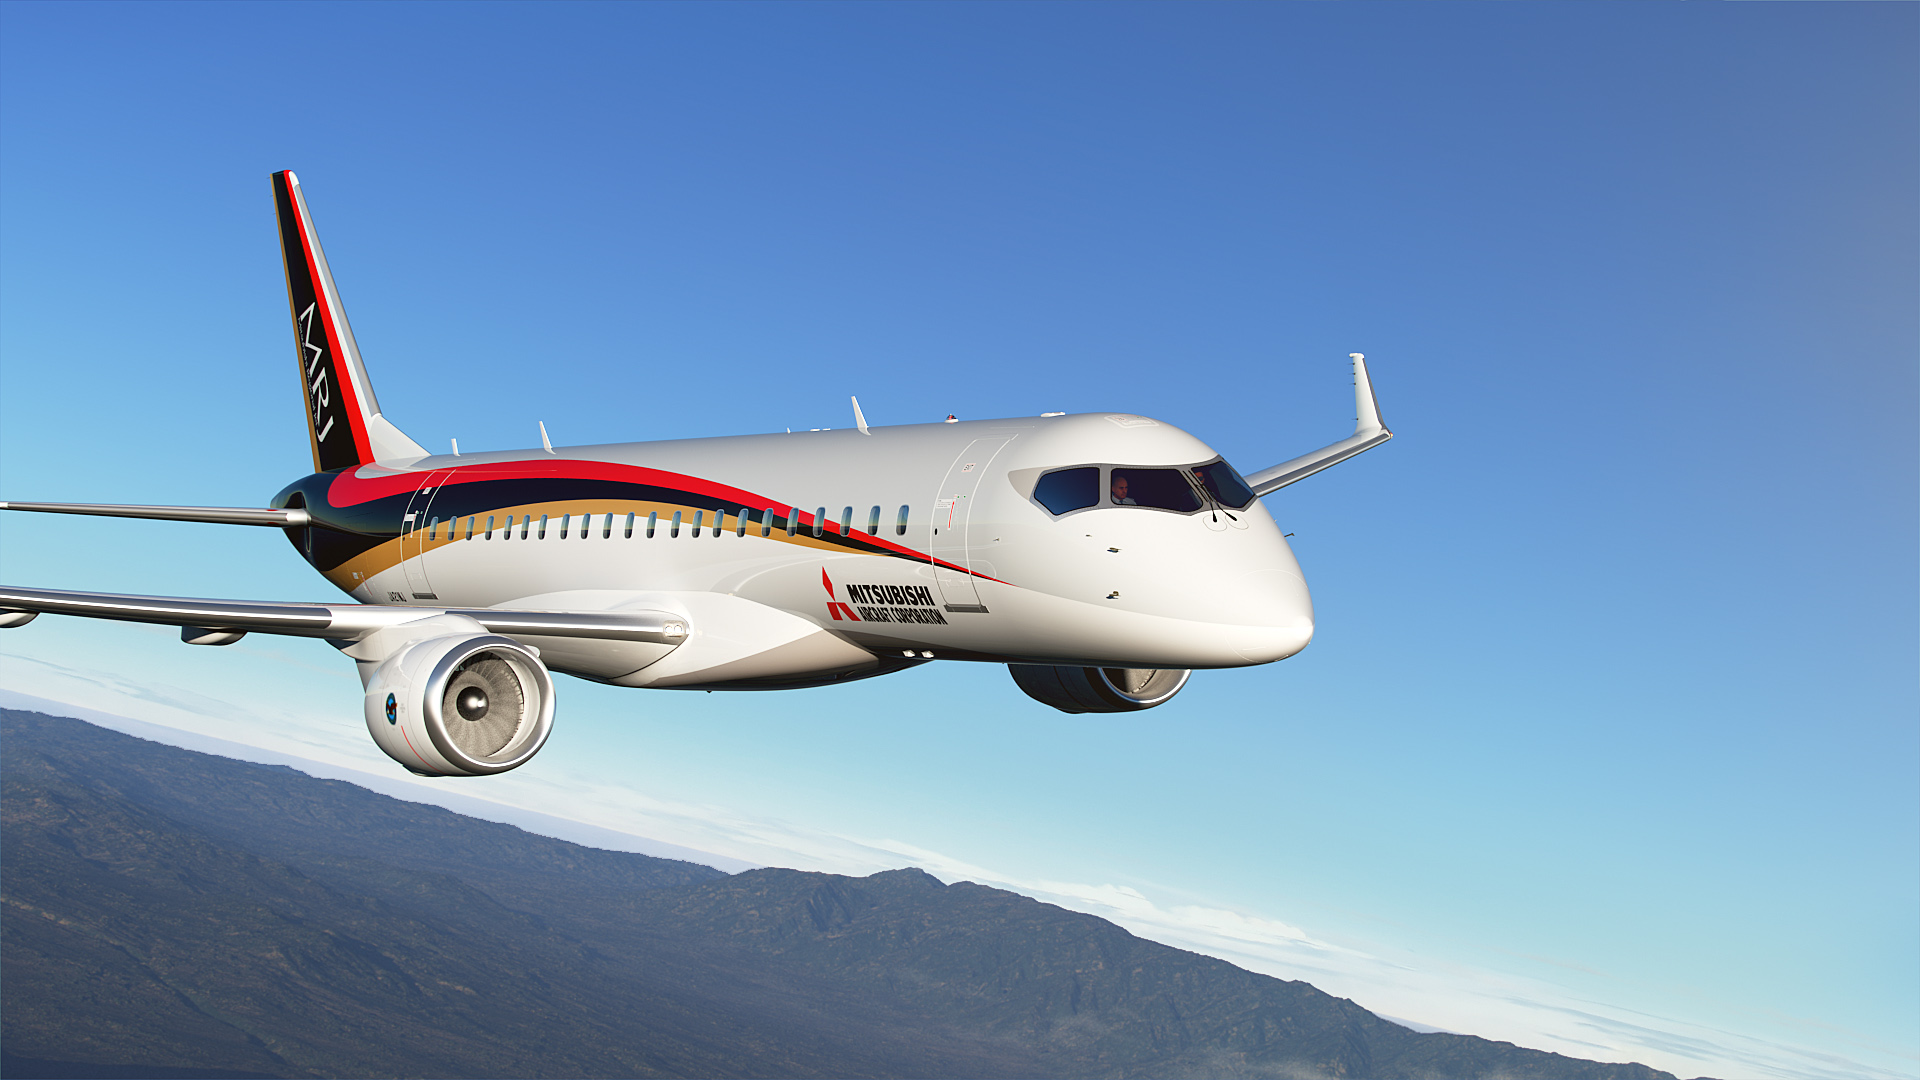 Mrj successfully completes first flight for Airplane exterior design